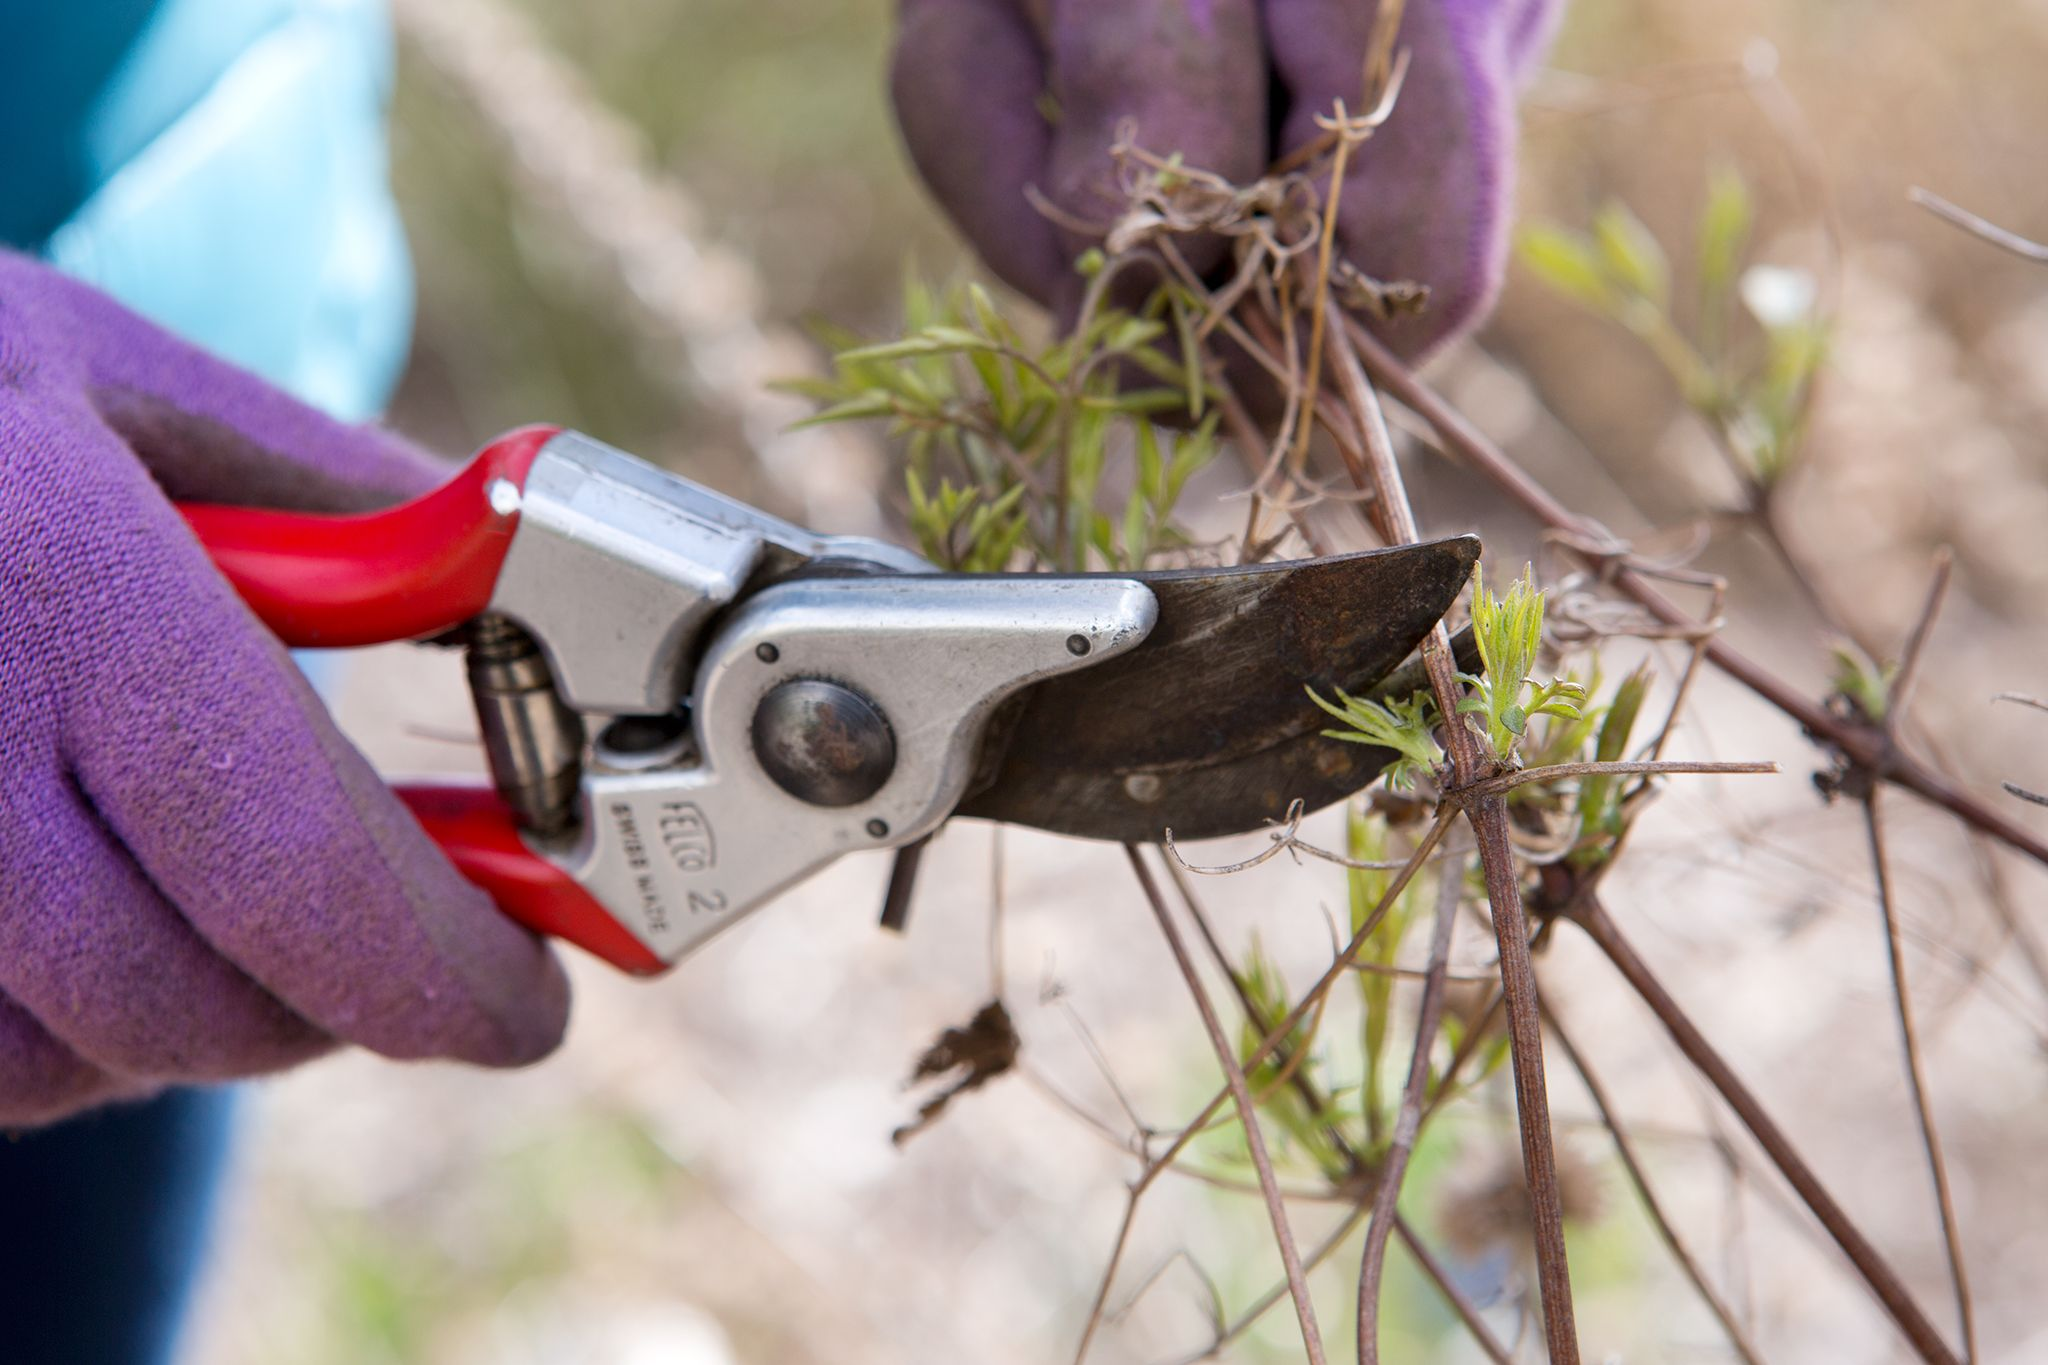 Find out how to prune Group 3 clematis in winter, including viticella and texensis types, in this practical guide from BBC Gardeners' World Magazine.